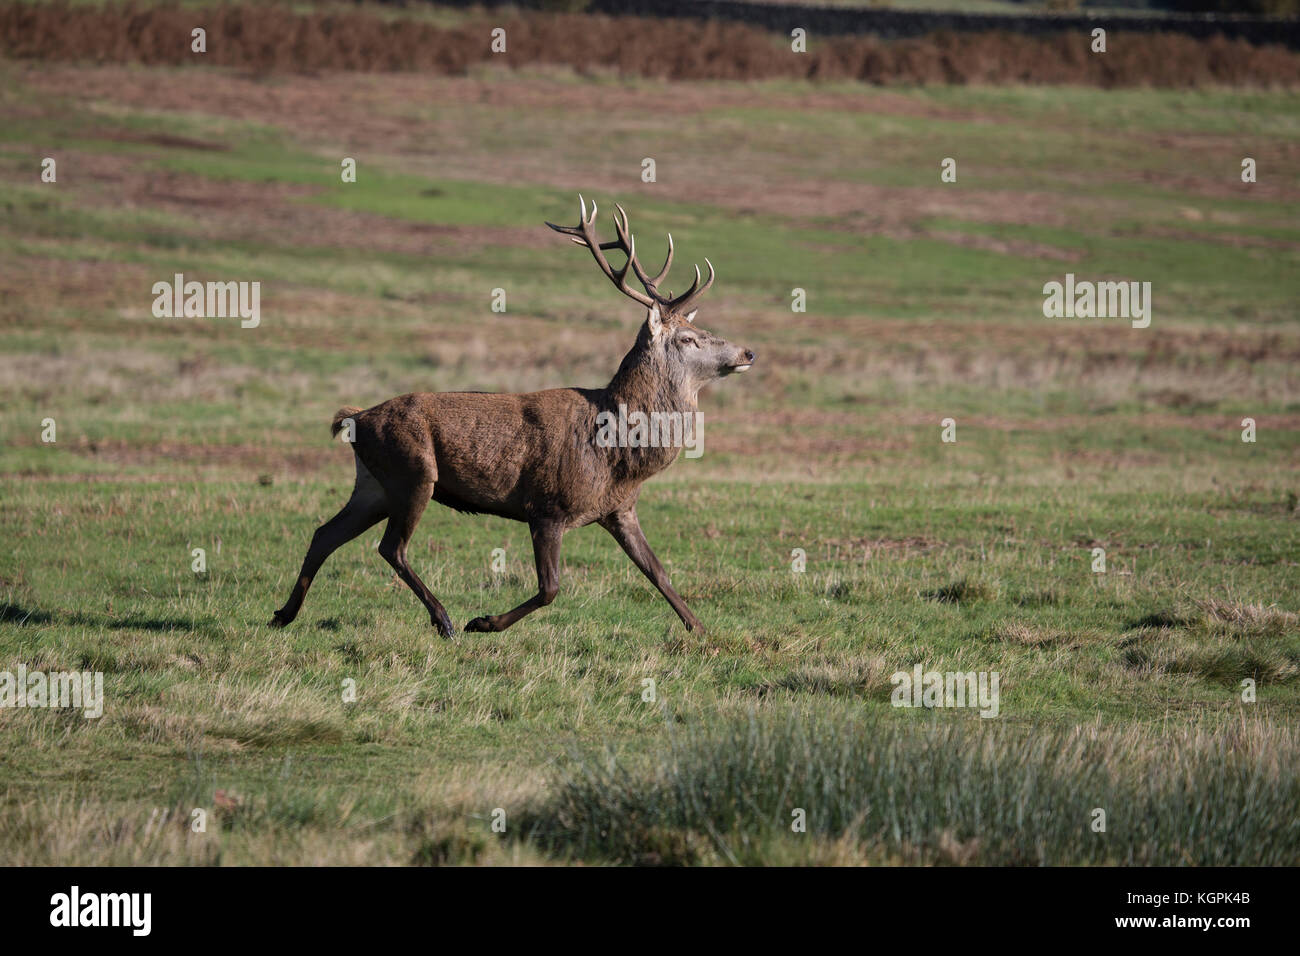 Red Deer stag with large antlers Cervus elaphus trotting across parkland in late autumn - Stock Image